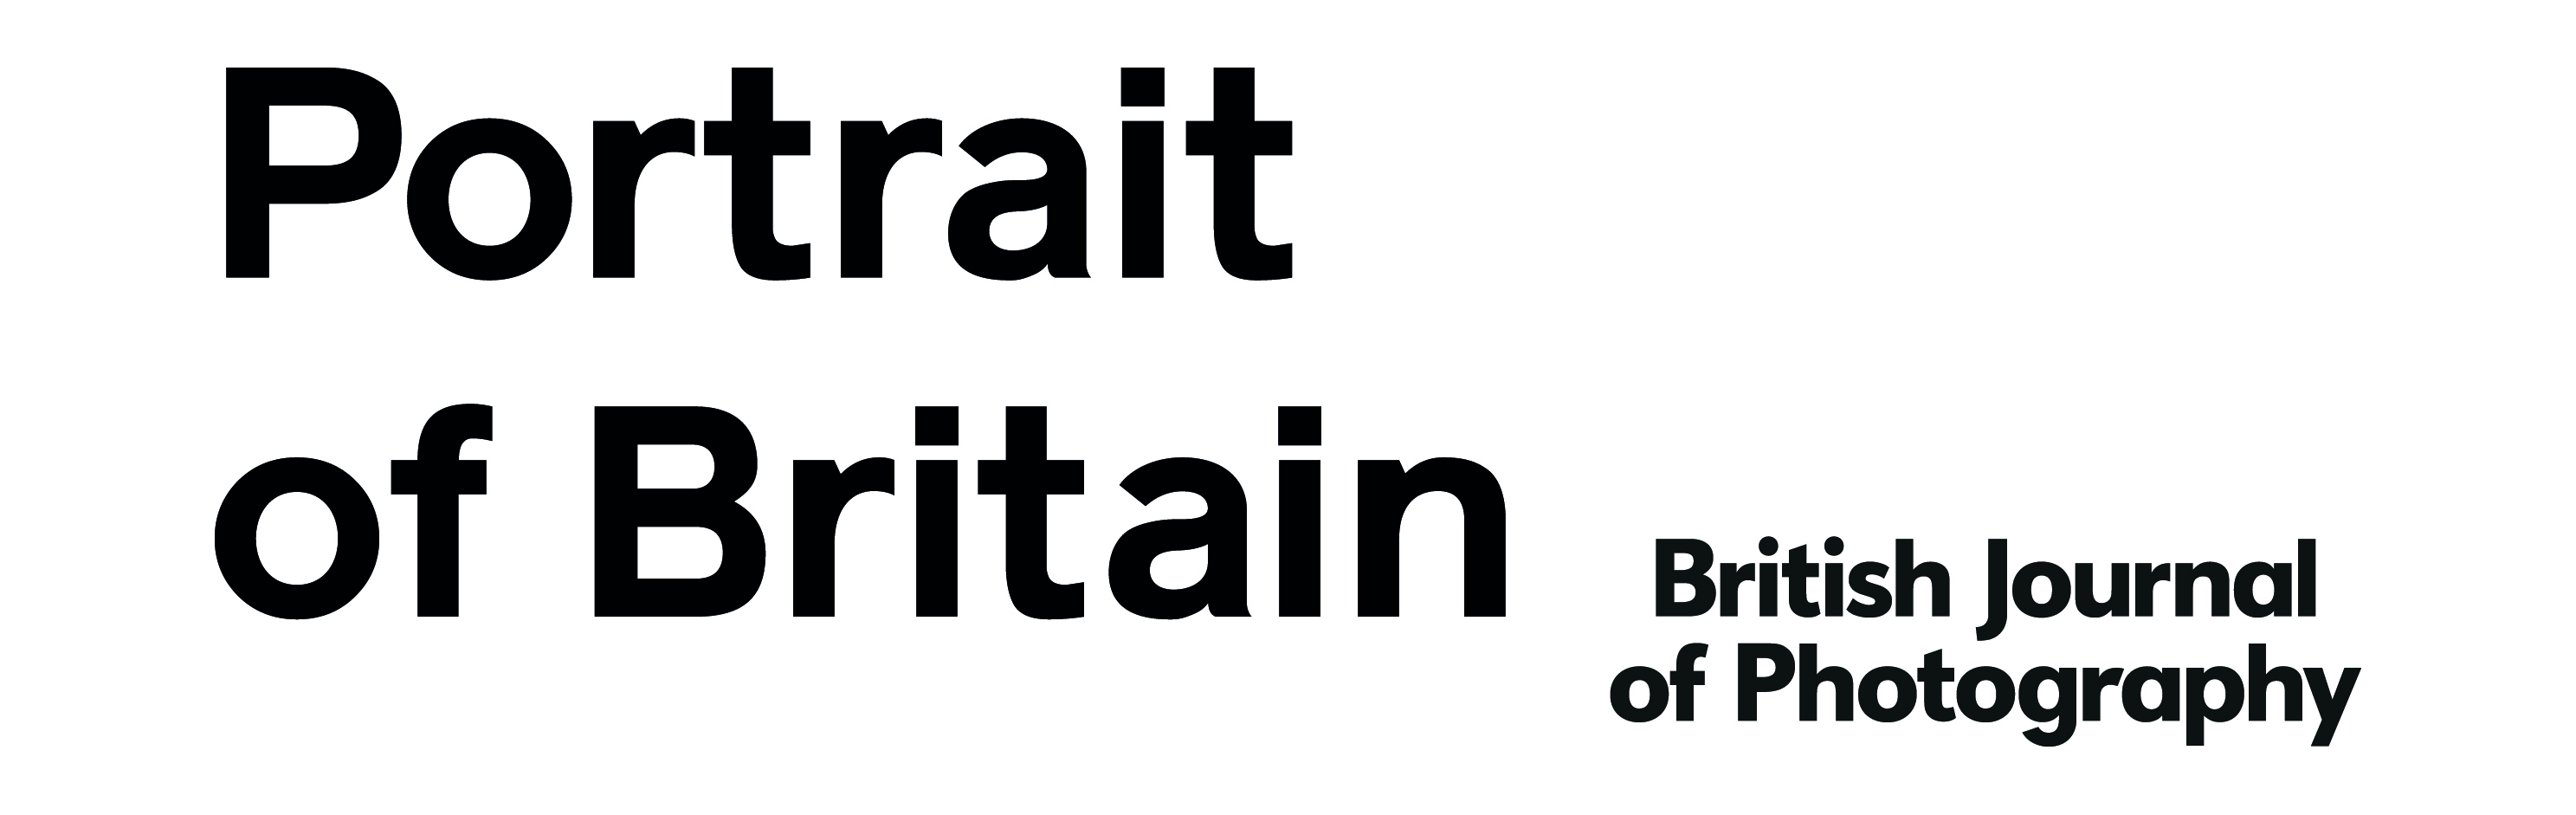 Portrait of Britain 2019 - logo